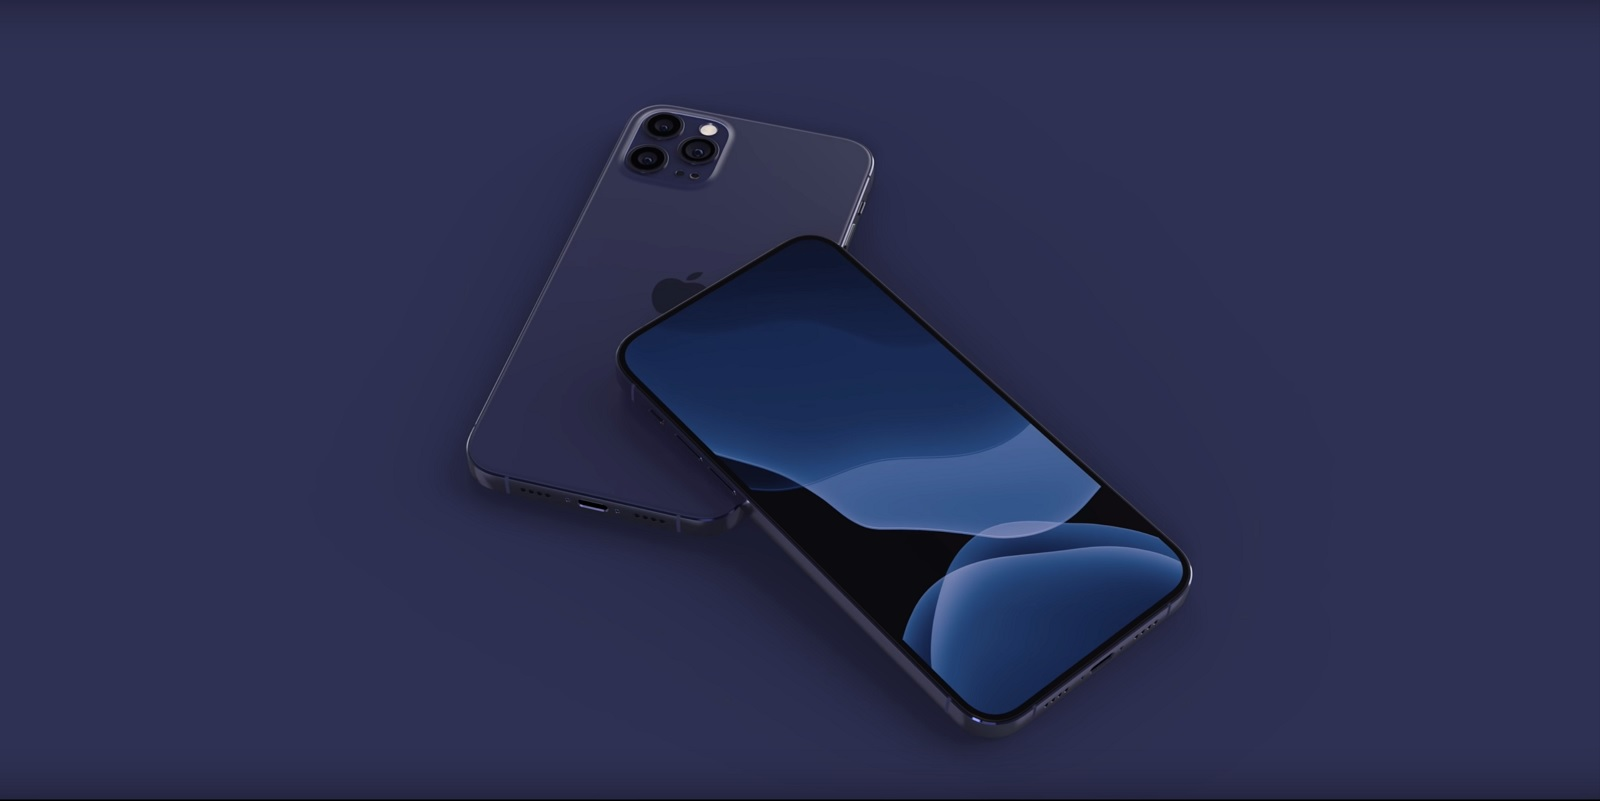 iPhone 12 might add a somber blue hue to its color lineup